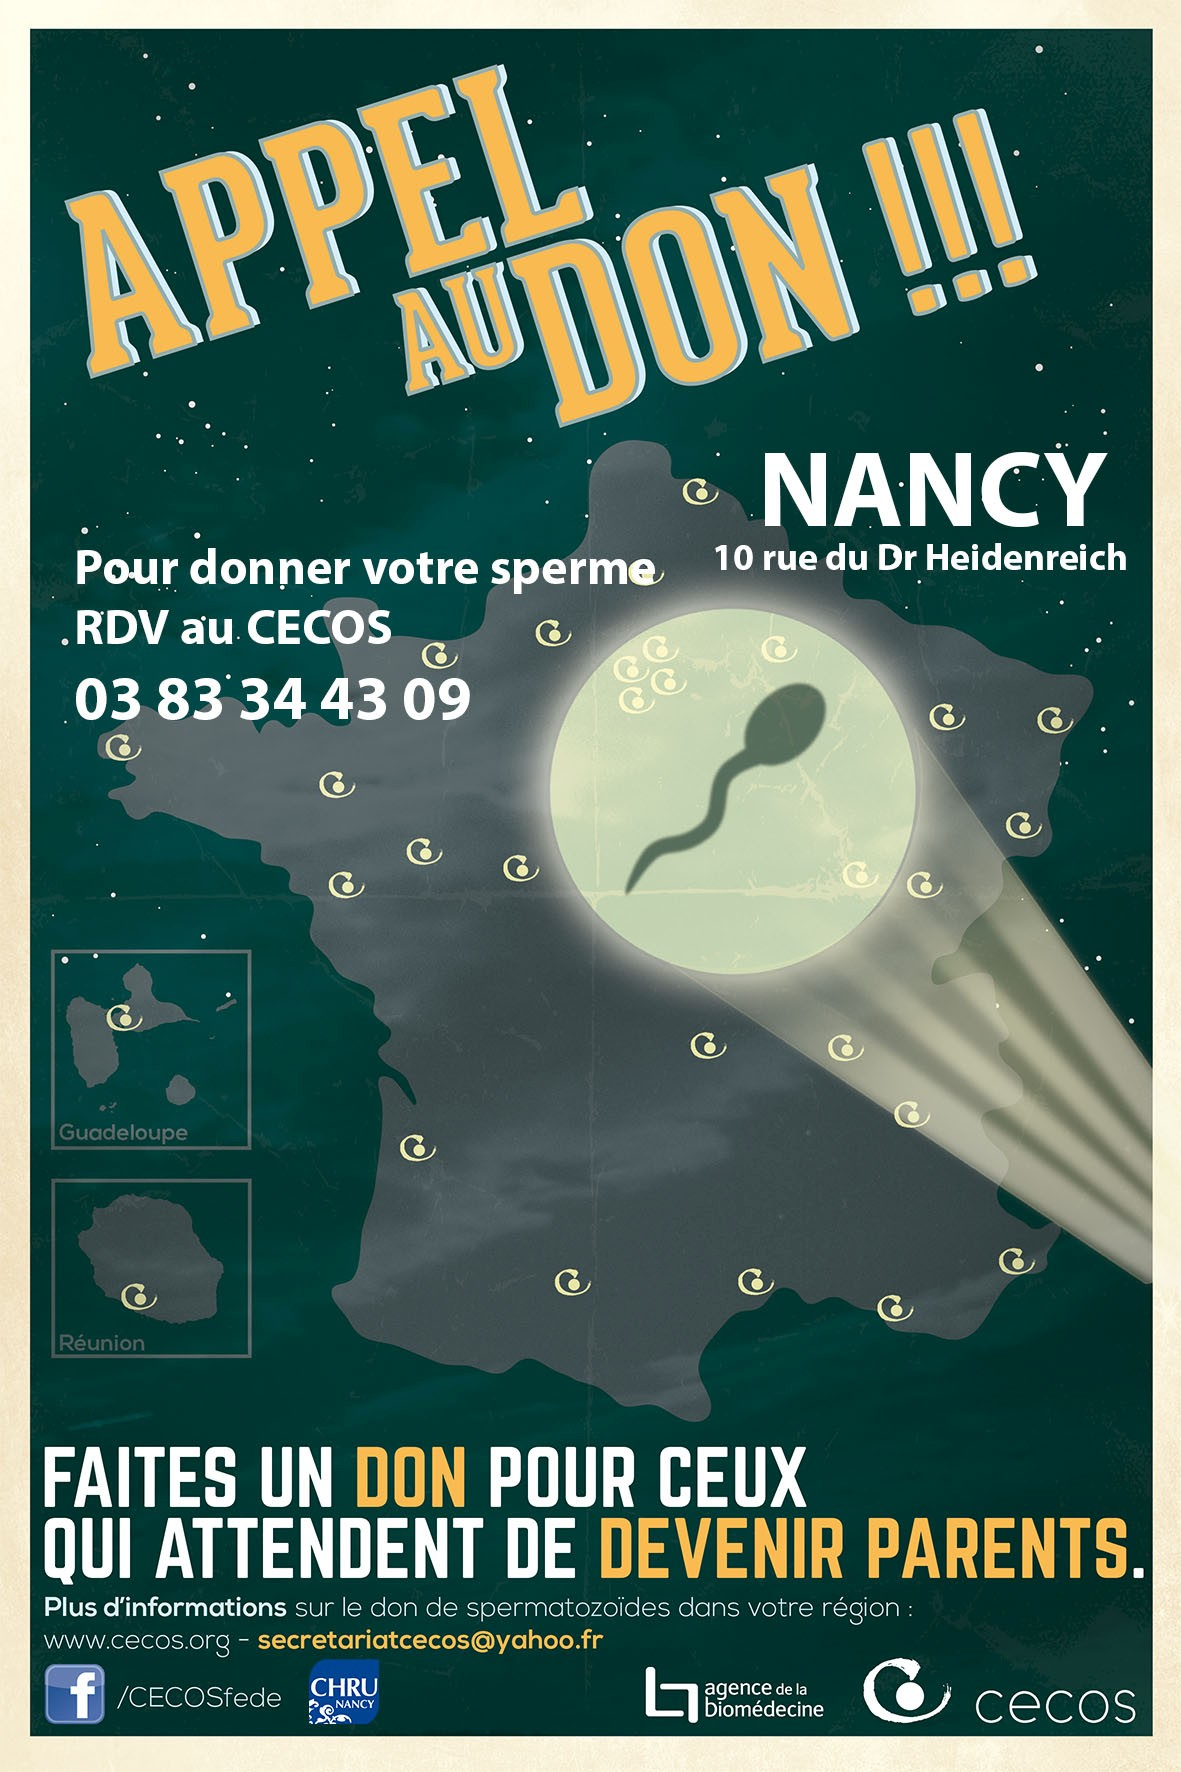 Appel don CECOS Nancy